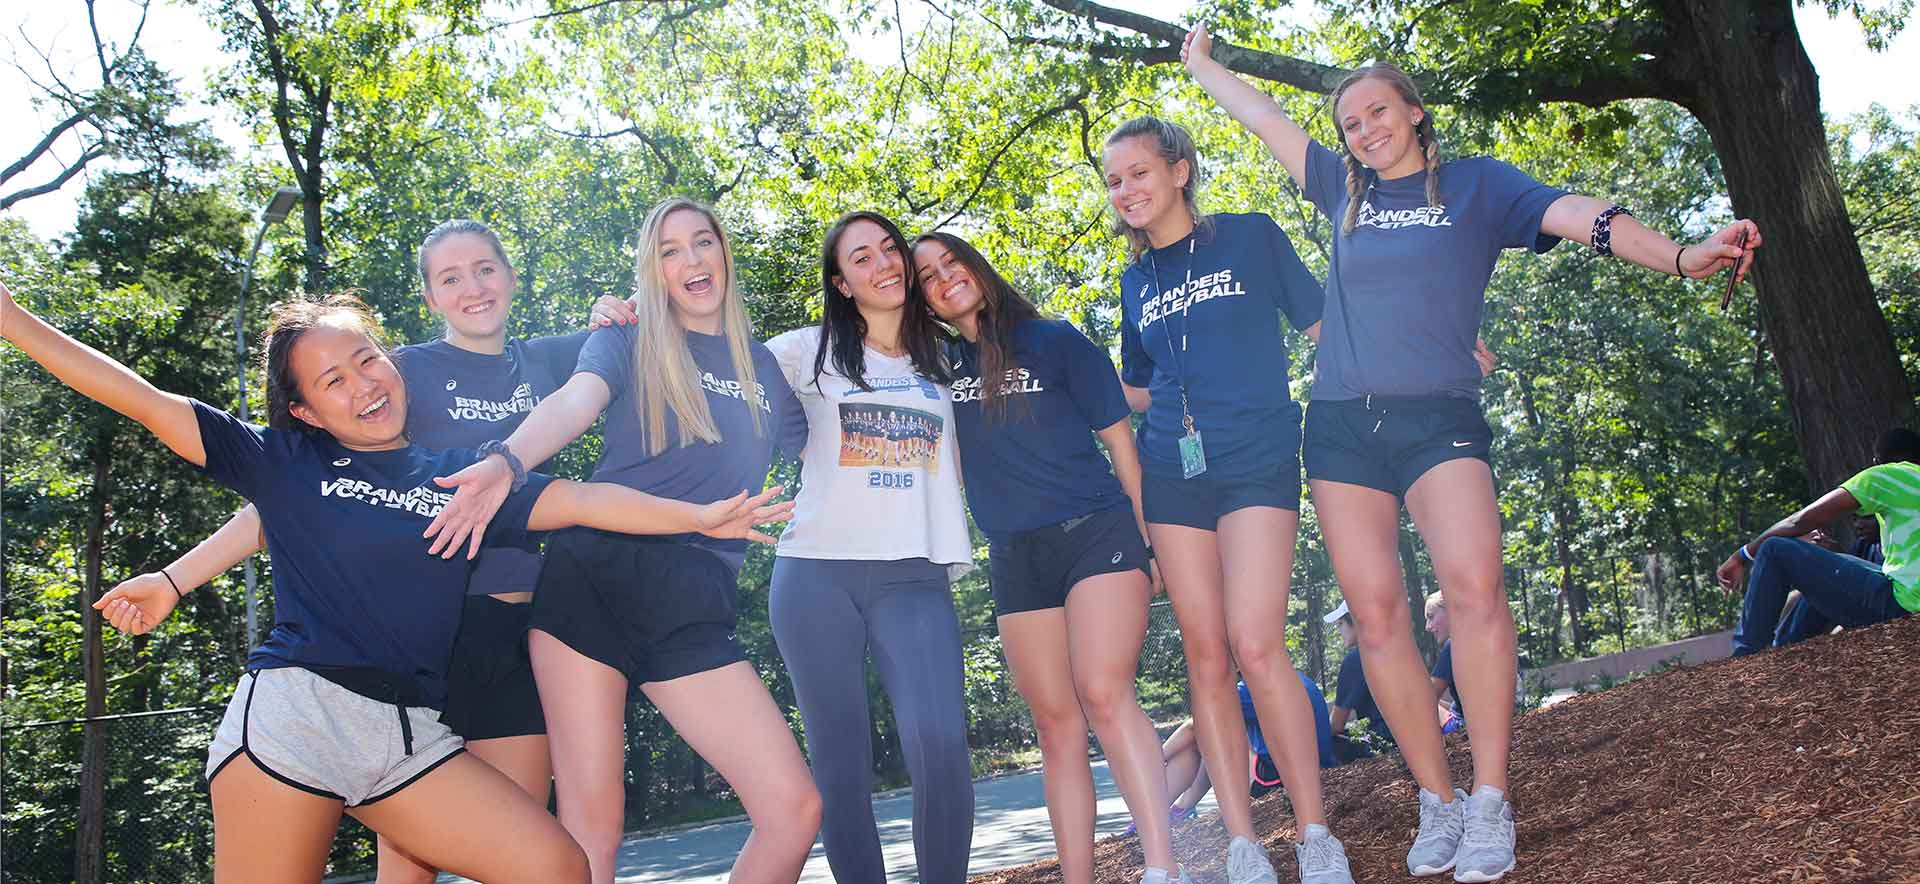 A group of Brandeis student athletes smiling and posing for the camera